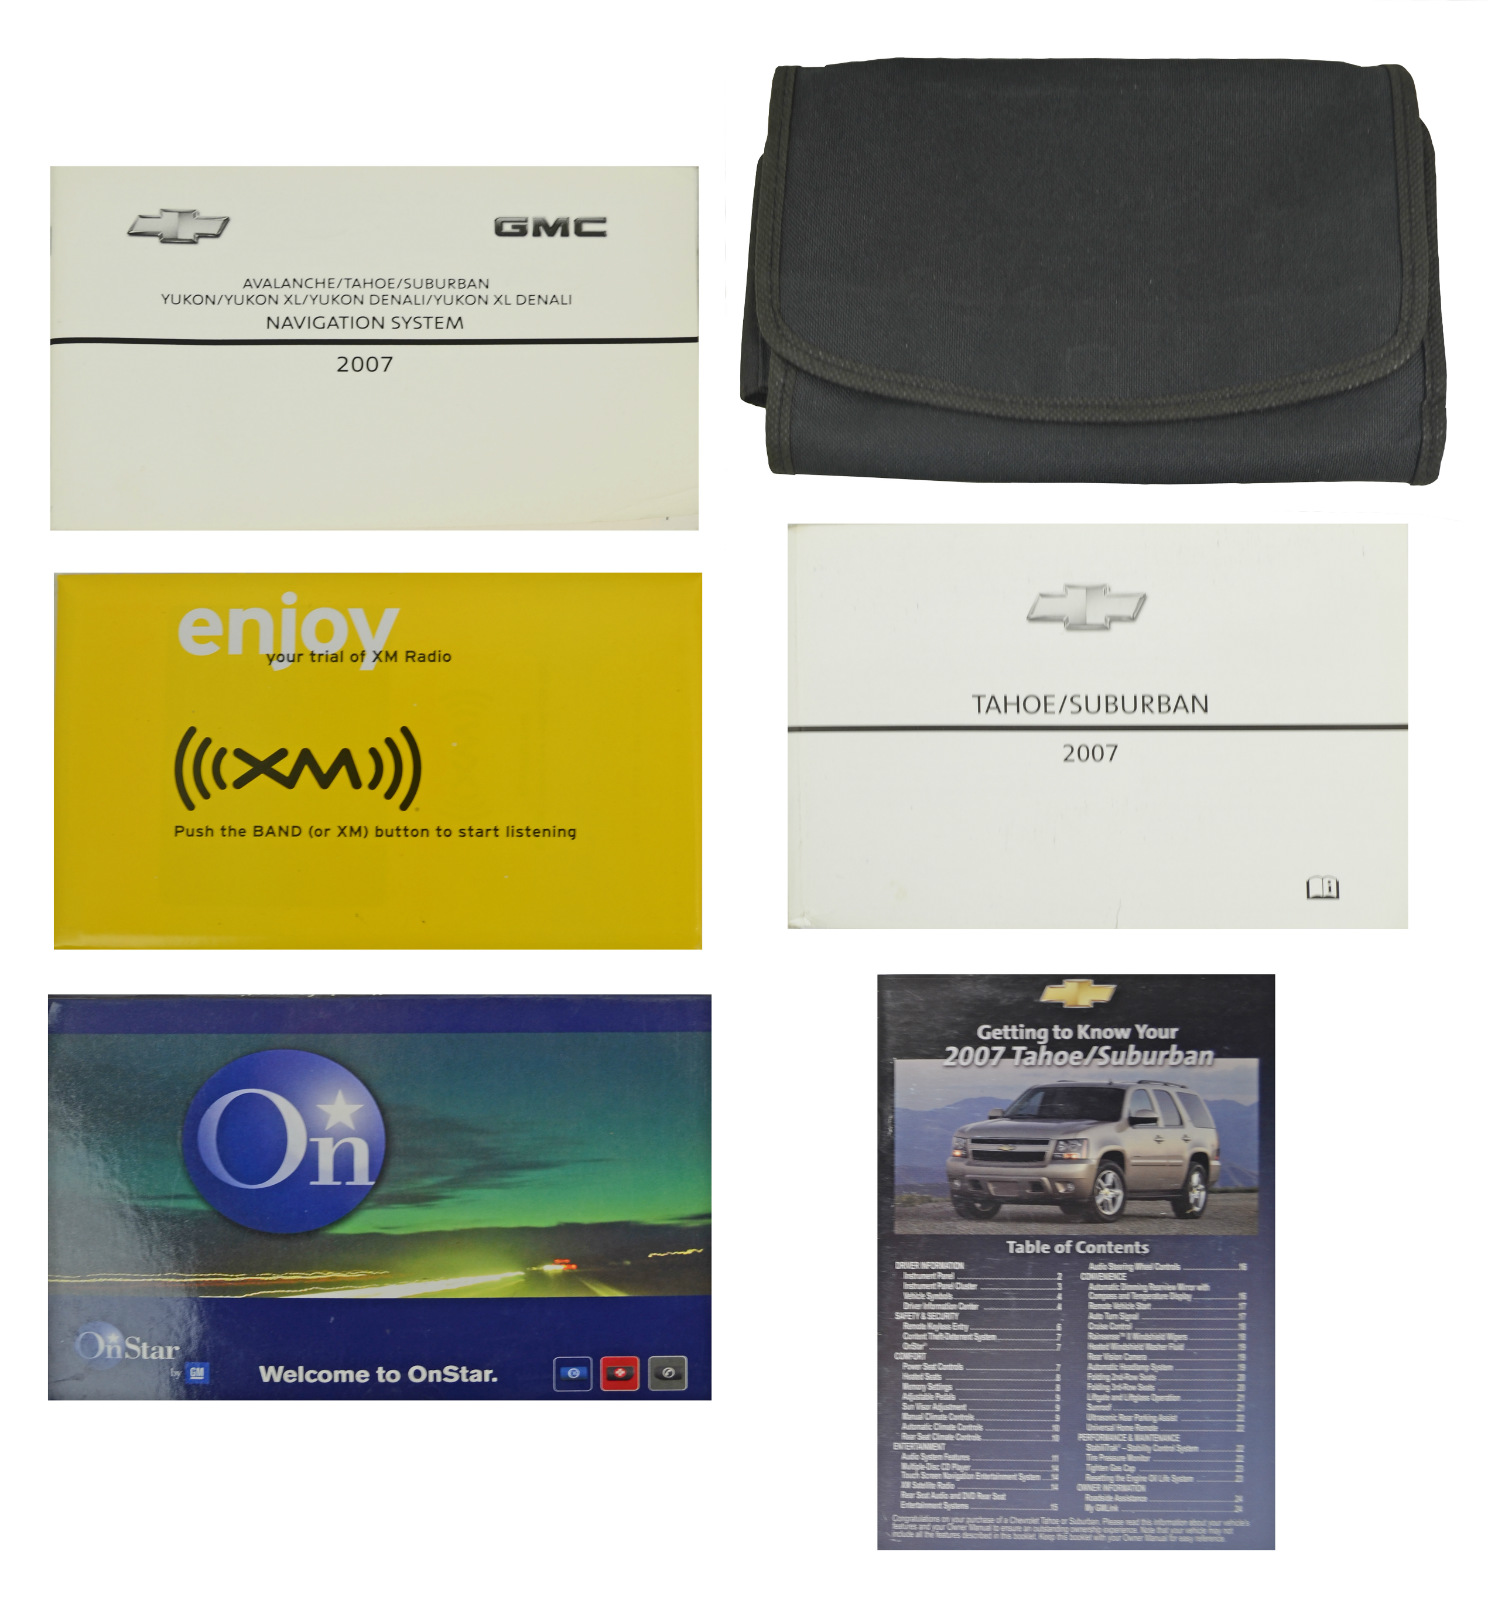 Crisecard blog 2007 chevrolet suburban lt owners manual fandeluxe Image collections